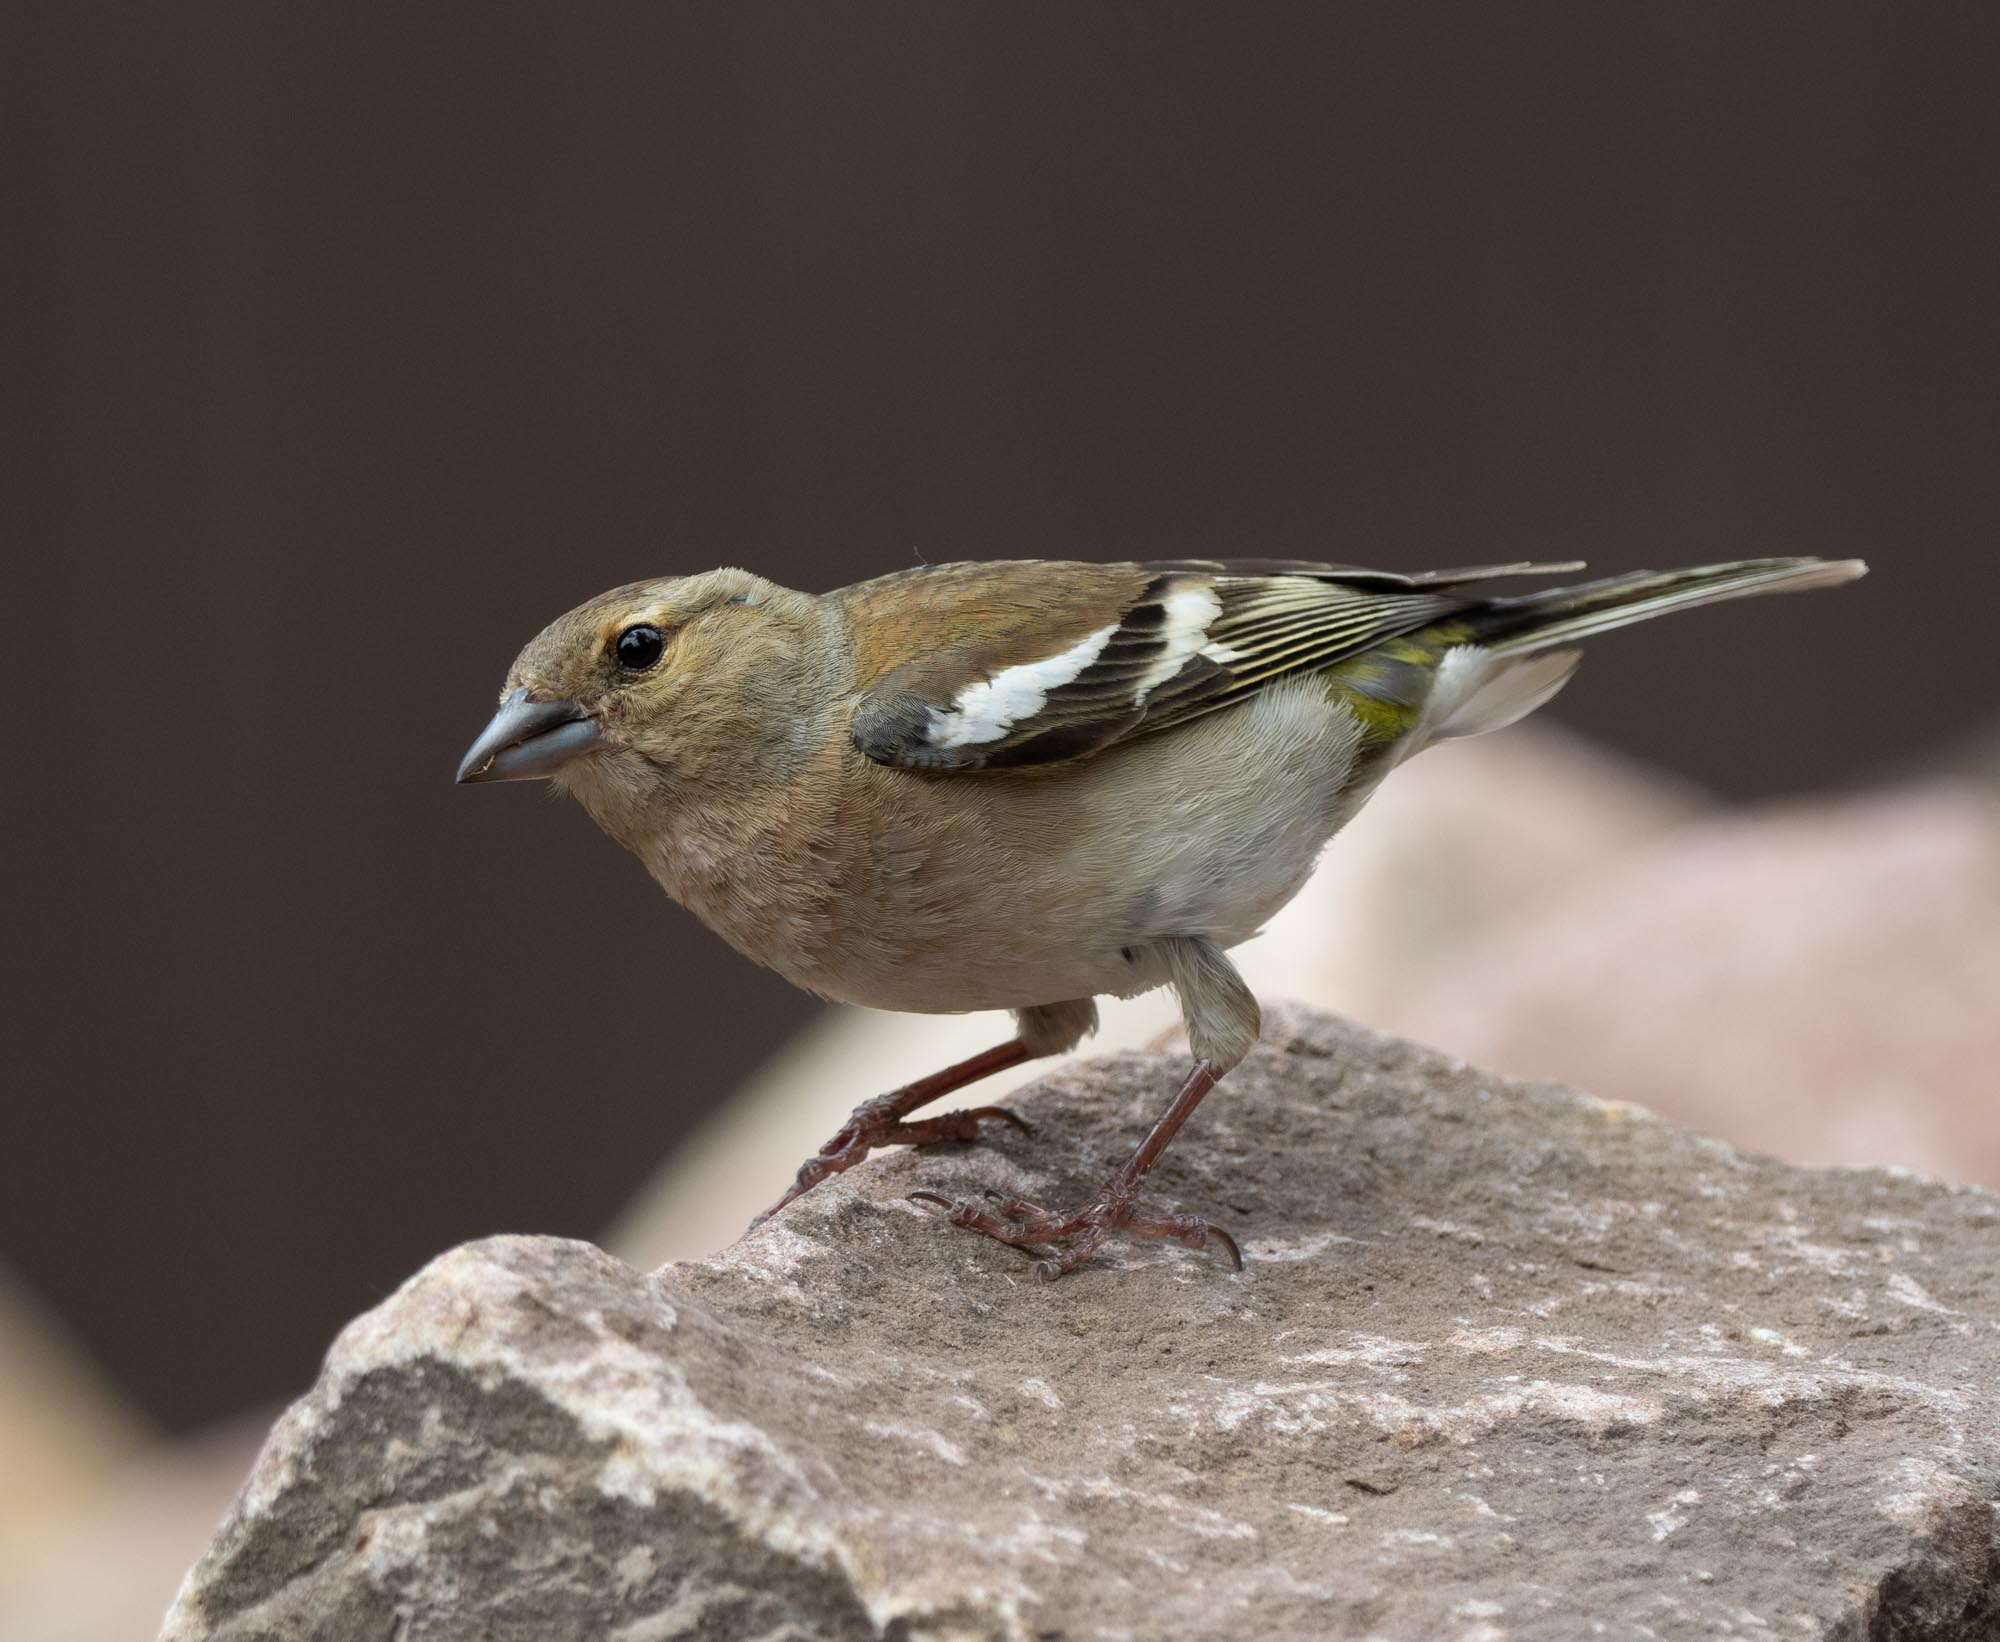 A Chaffinch searches for food among the stones